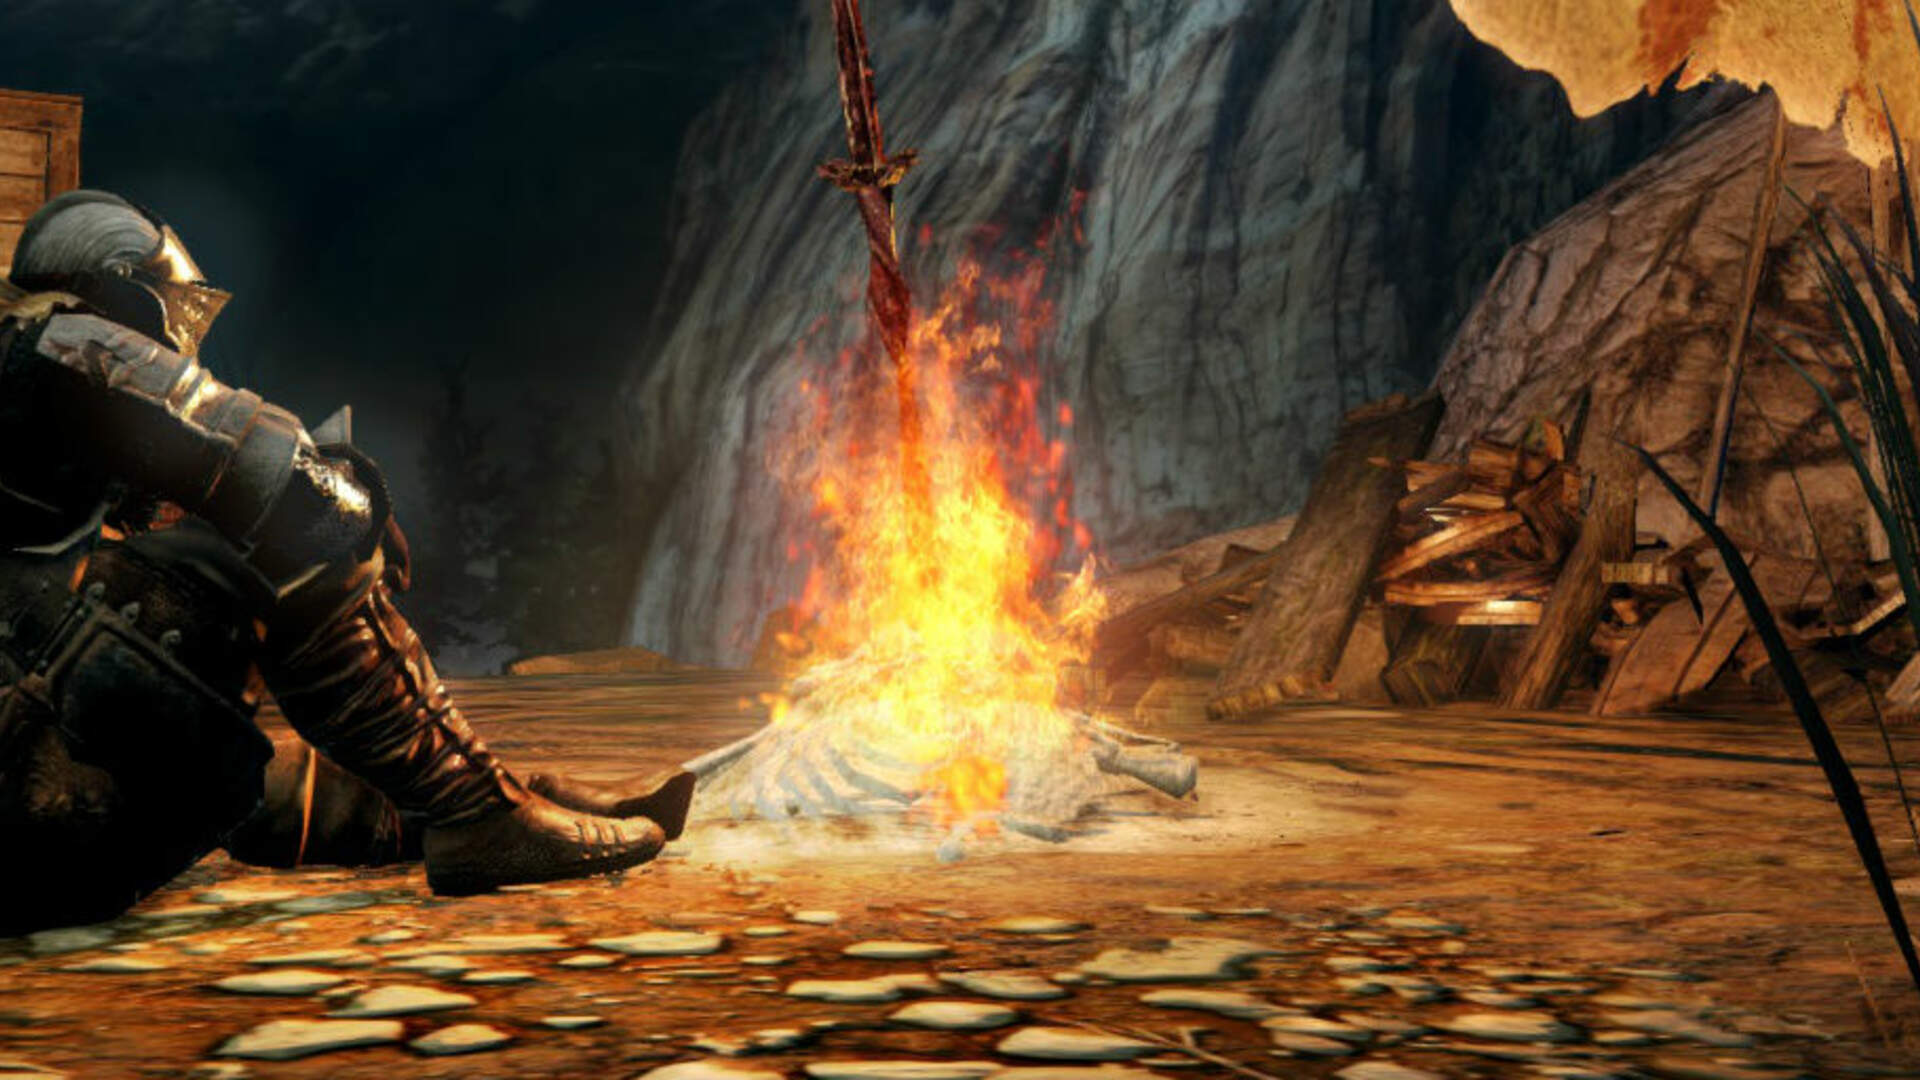 Dark Souls 2 Guide: Enter Iron Keep and Defeat the Smelter Demon